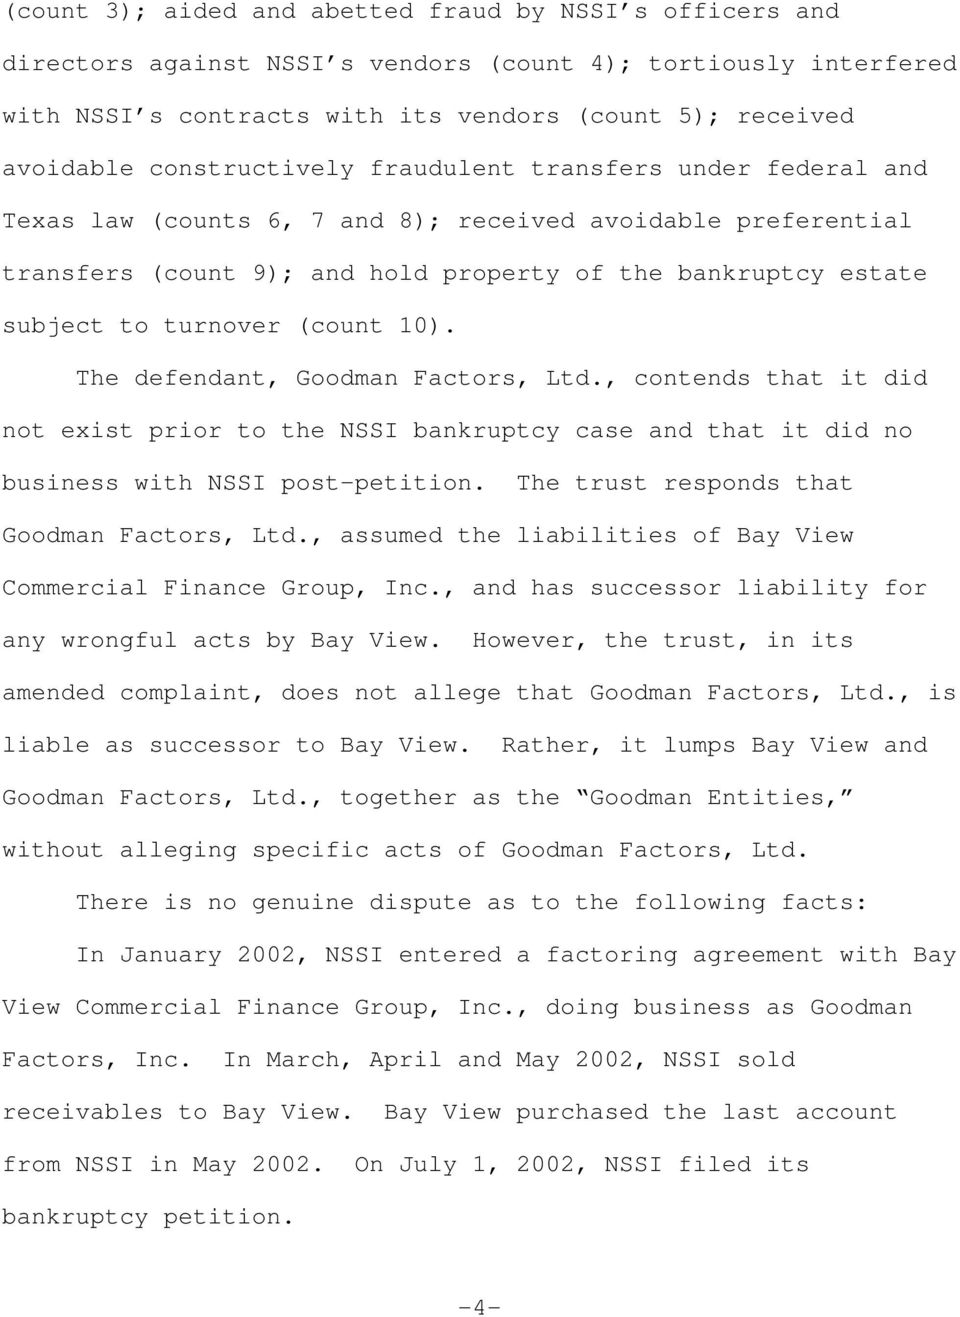 turnover (count 10). The defendant, Goodman Factors, Ltd., contends that it did not exist prior to the NSSI bankruptcy case and that it did no business with NSSI post-petition.